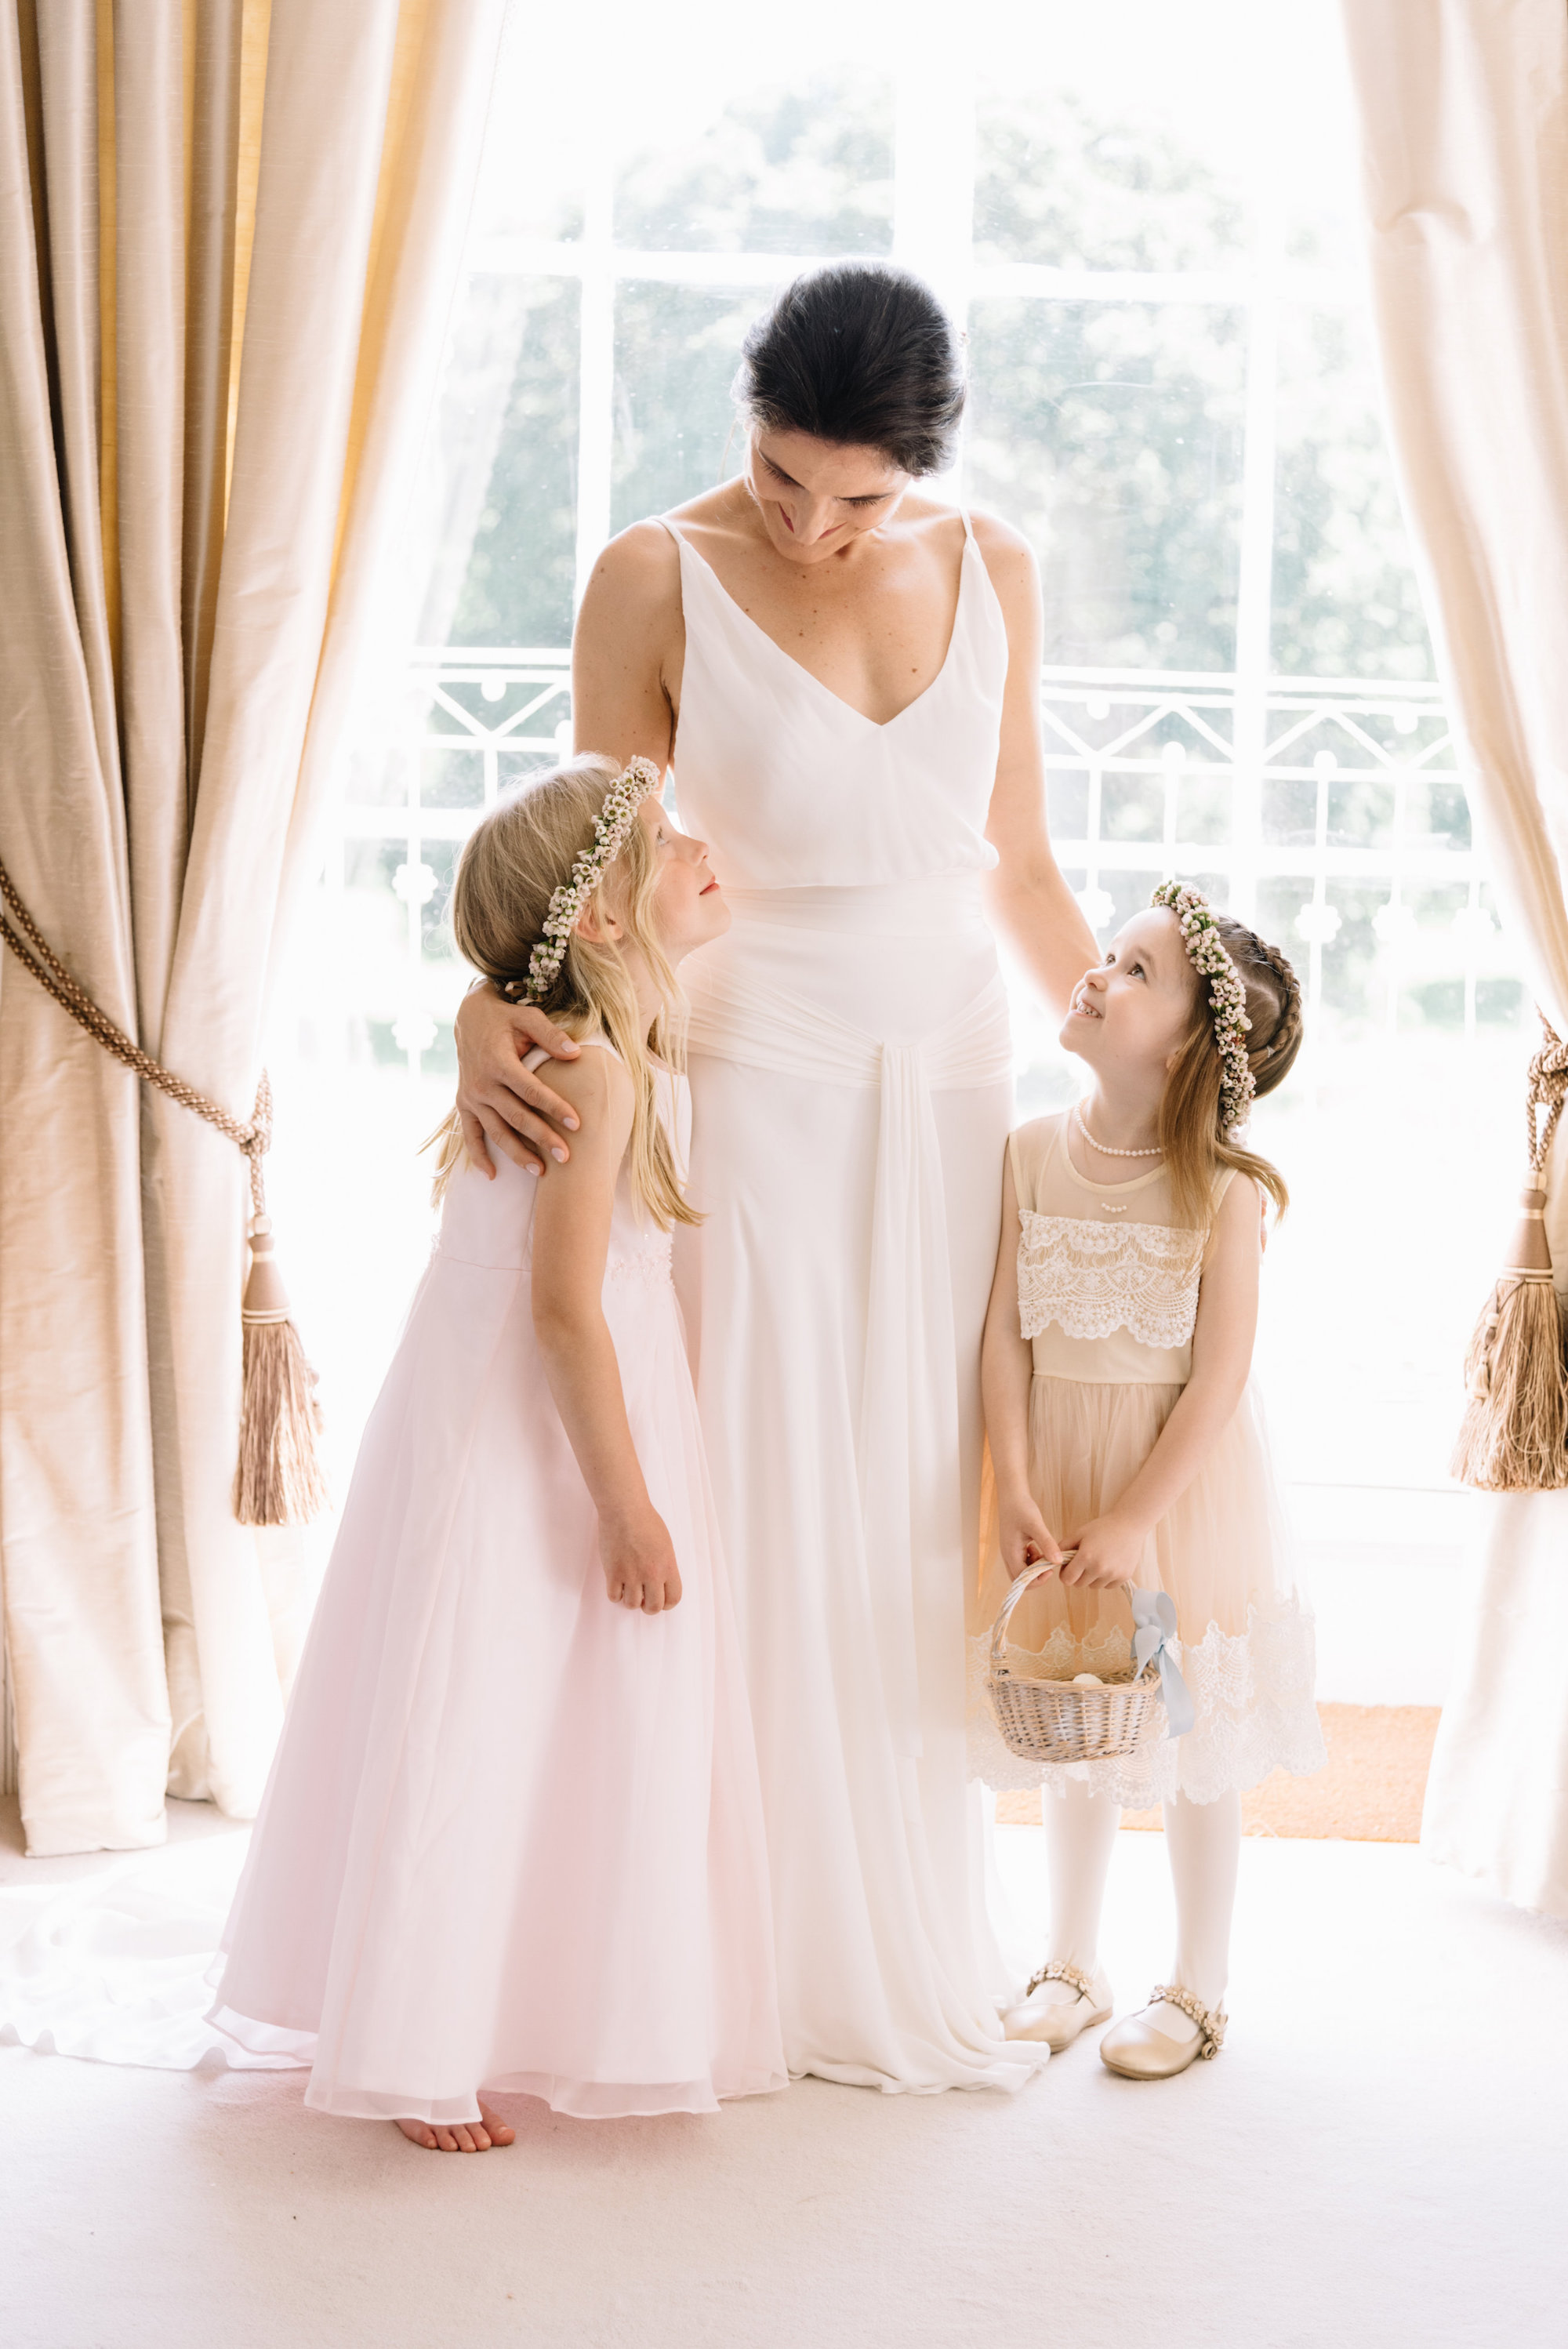 Luxury Wedding Planner UK | Jennifer & Timothy's English Country Manor Wedding | Soft Pink Pale Blue White and Silver Toned Green Neutral Tones American Bride North Cadbury Court | Nicole Colwell Photography 0725.jpg